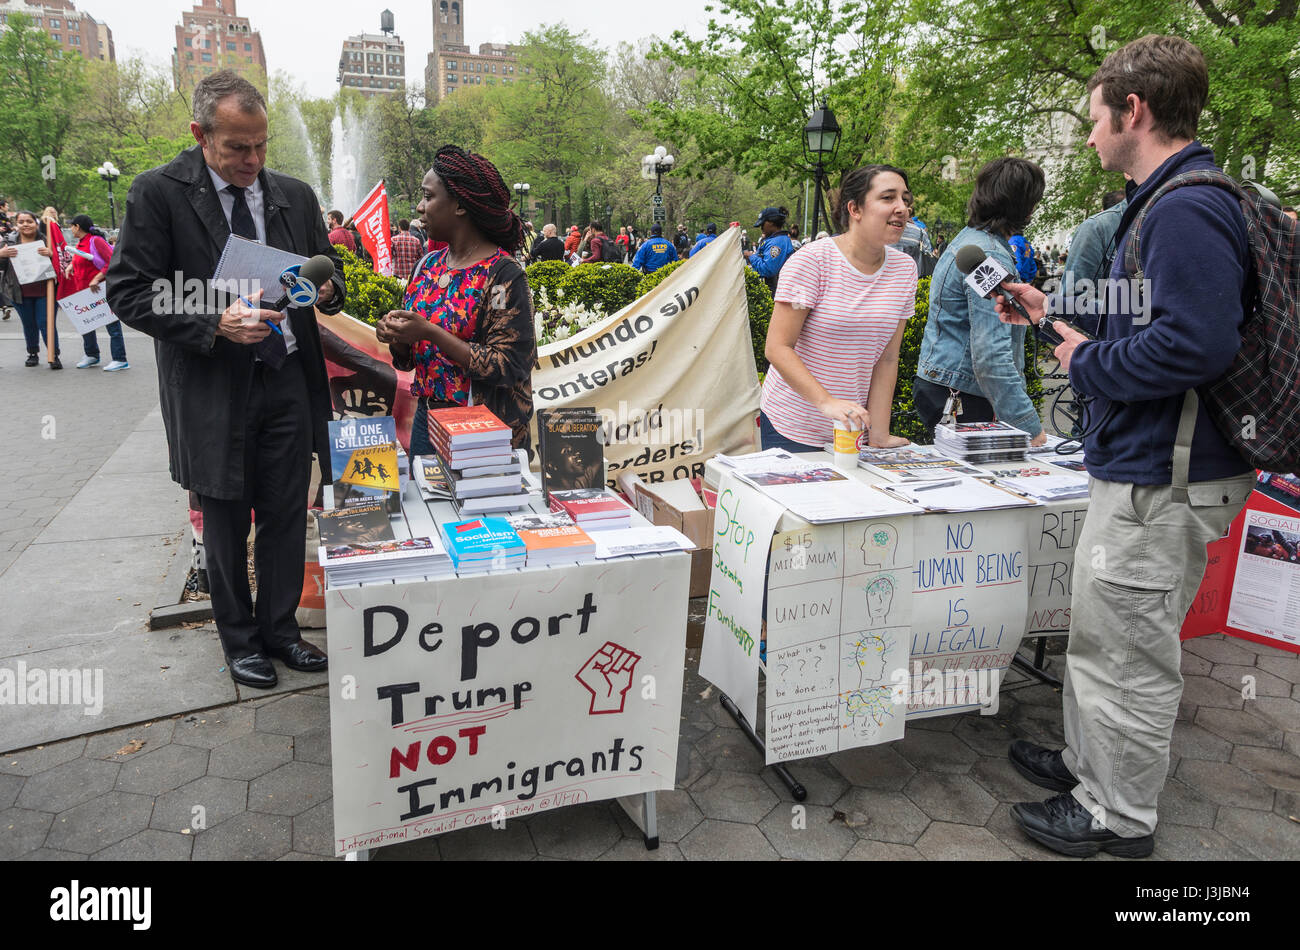 New York, NY USA - 1 May 2017 - Members of the Socialist Alternative tabeling at a May Day rally, speak with the - Stock Image